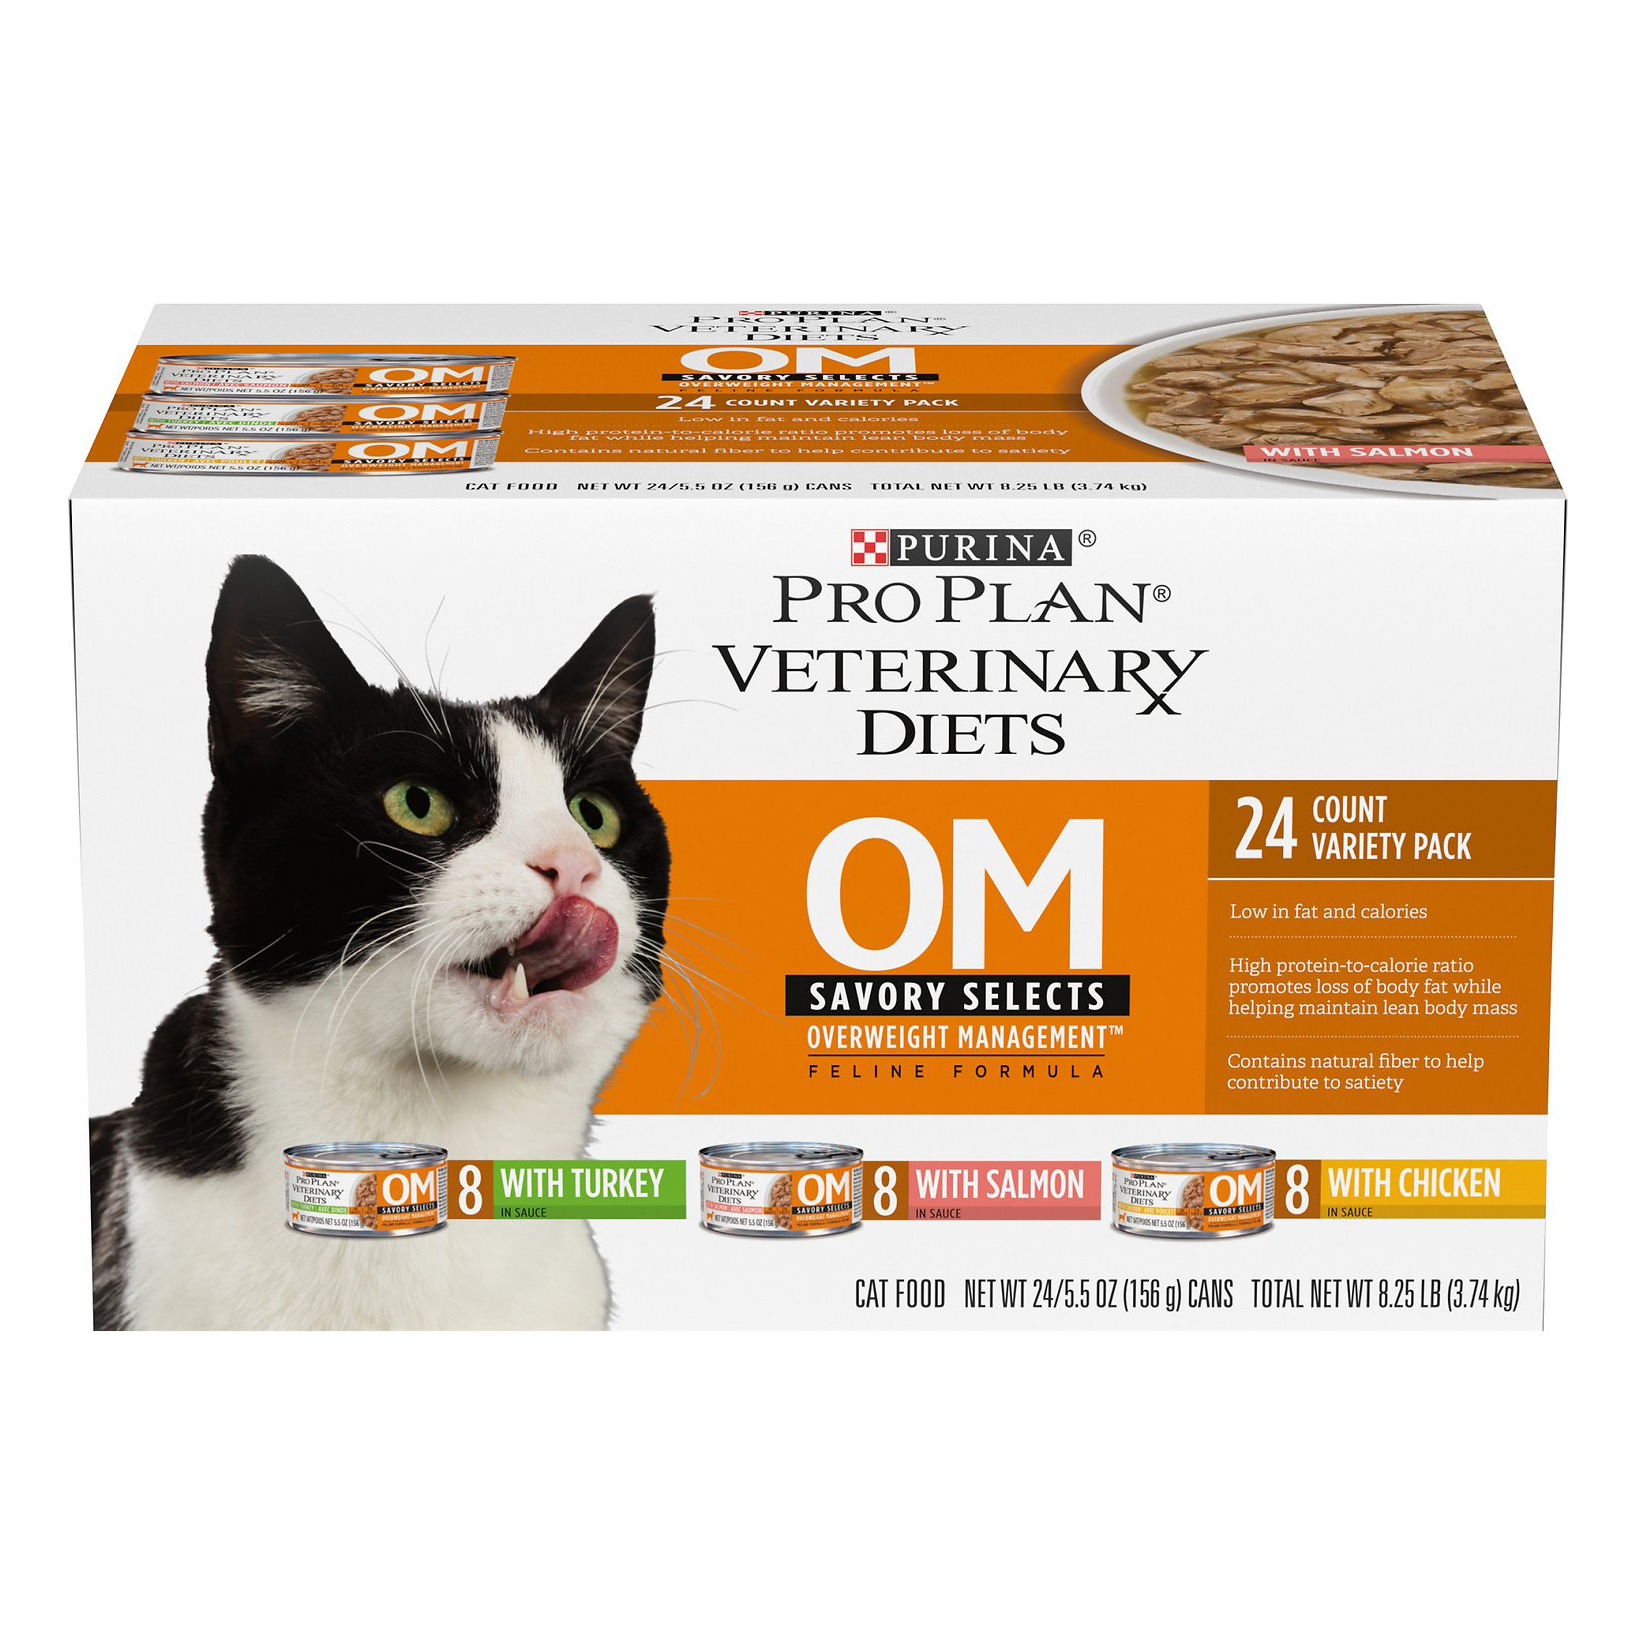 purina-pro-plan-veterinary-diets-om-savory-selects-wet-cat-food-variety-pack